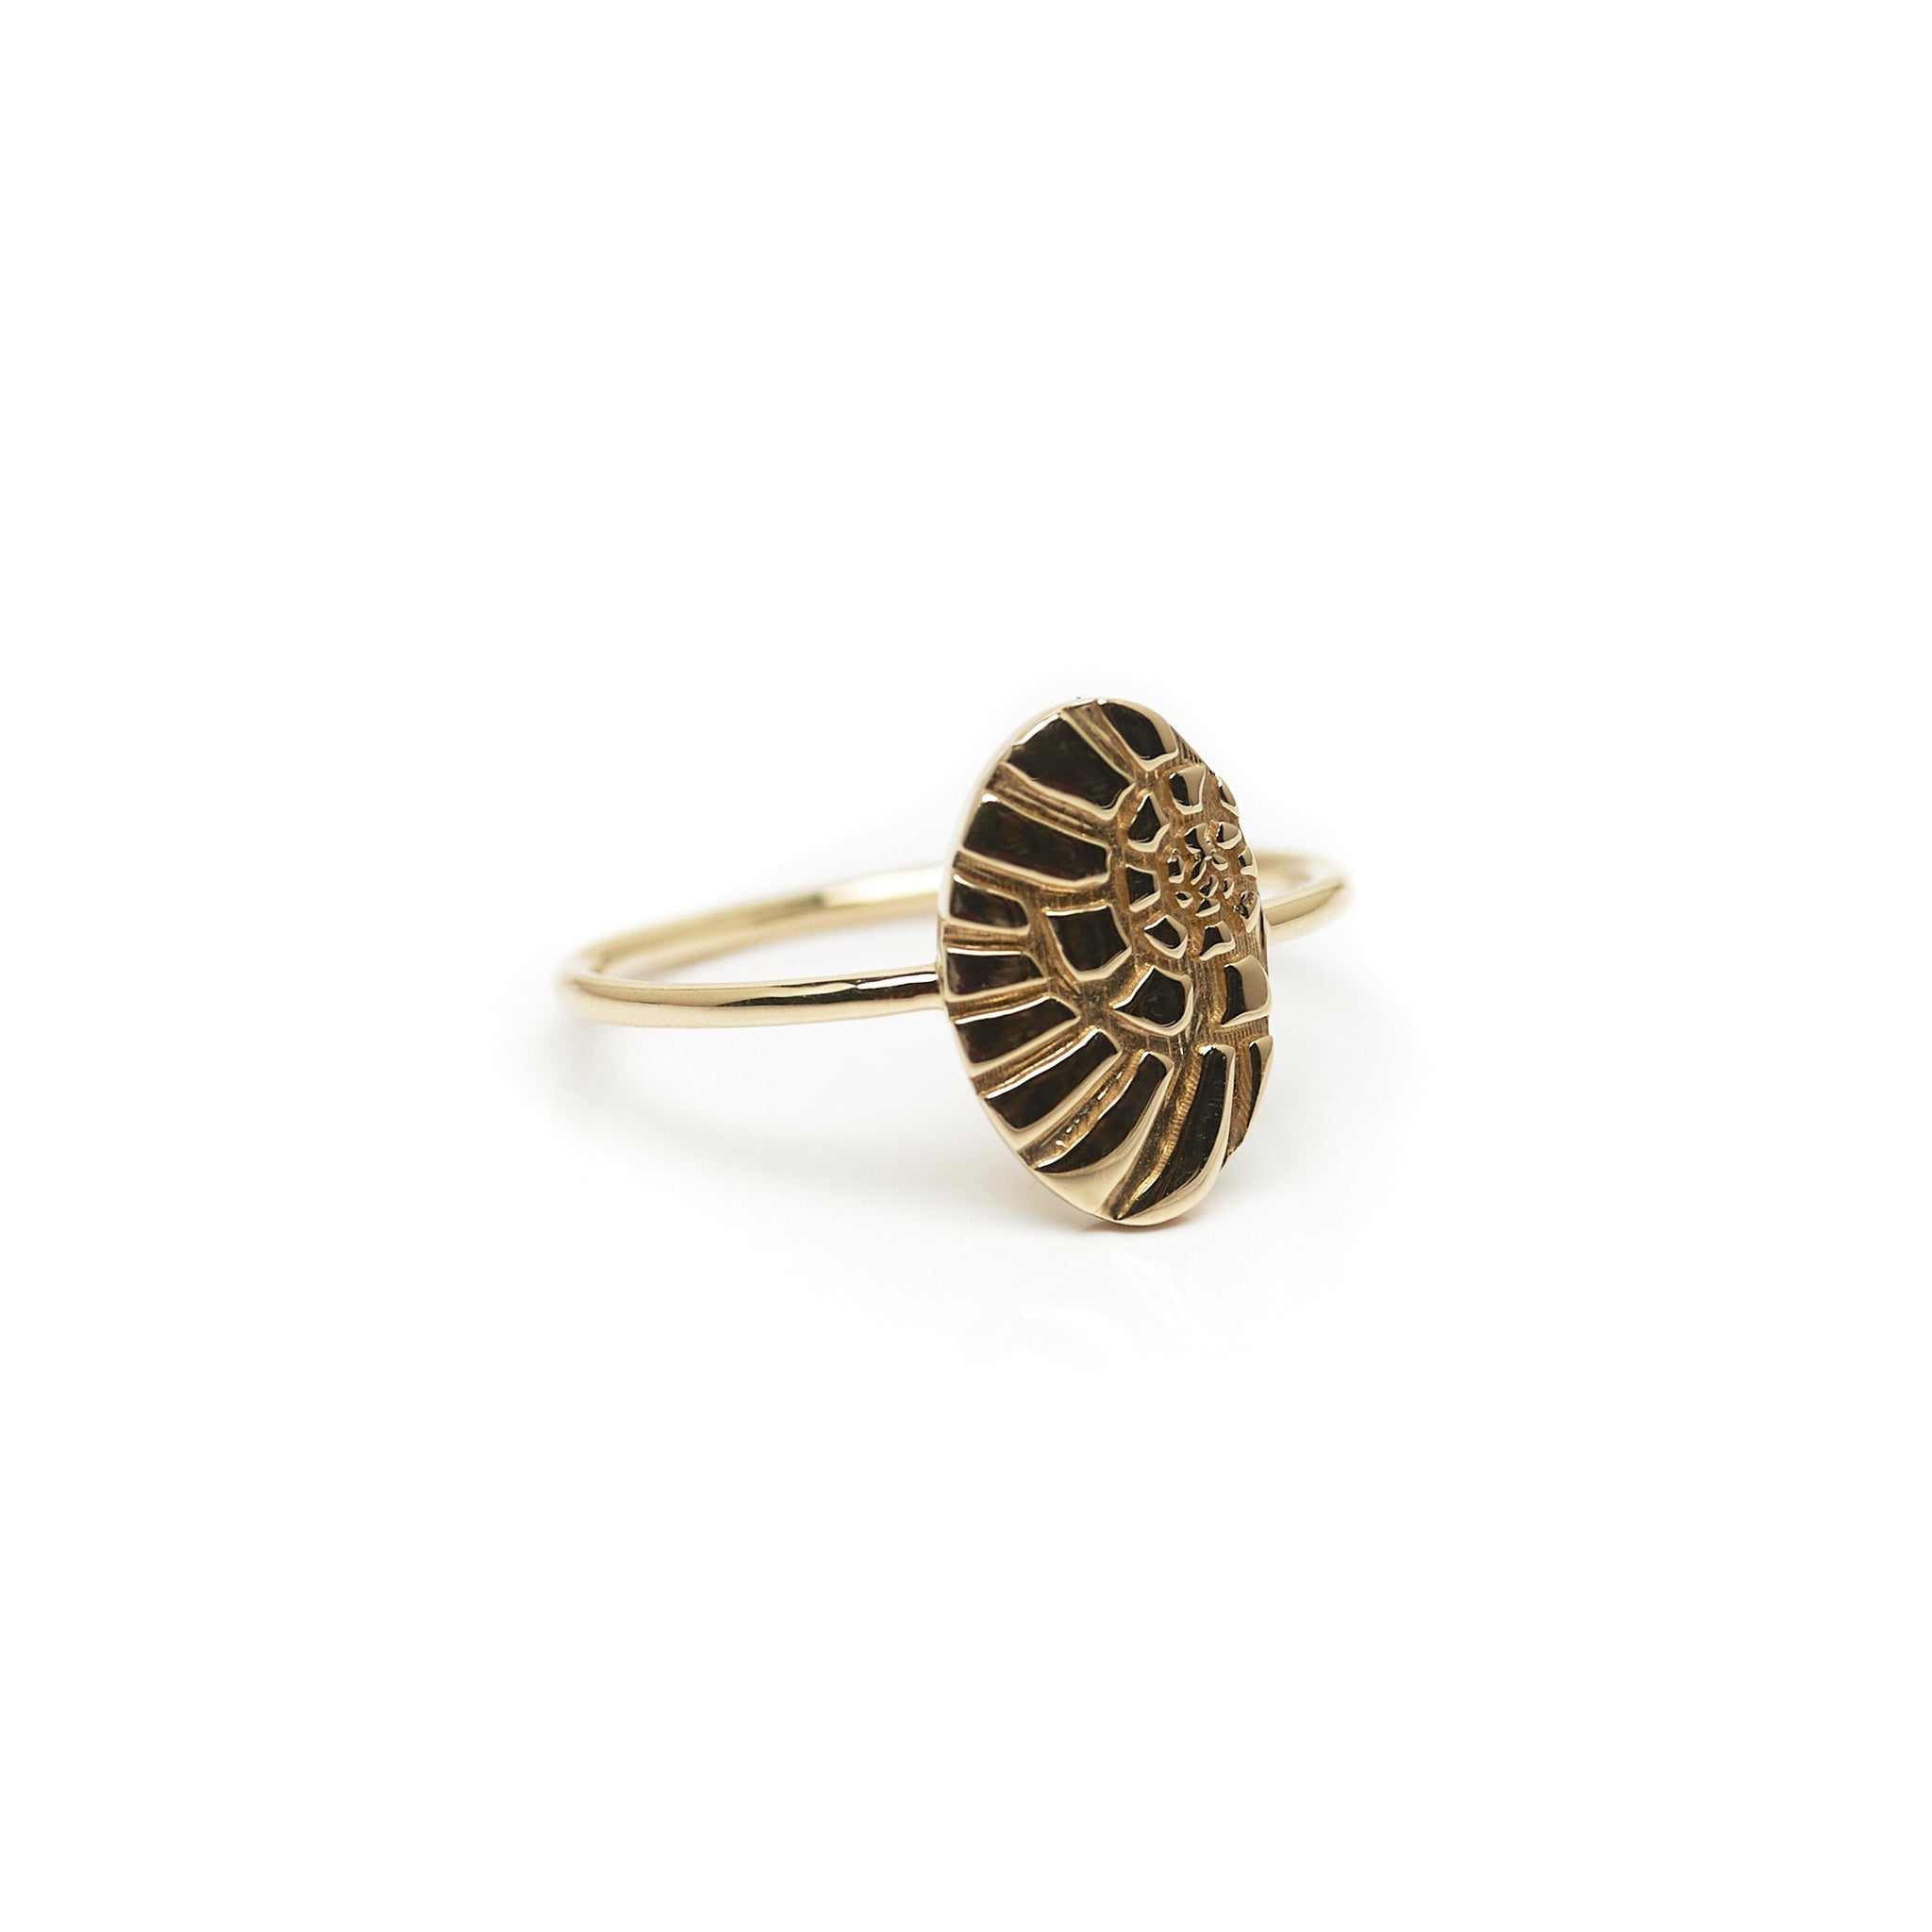 Minimalist solid 14k gold Nautilus statement ring. Every day fine jewelry